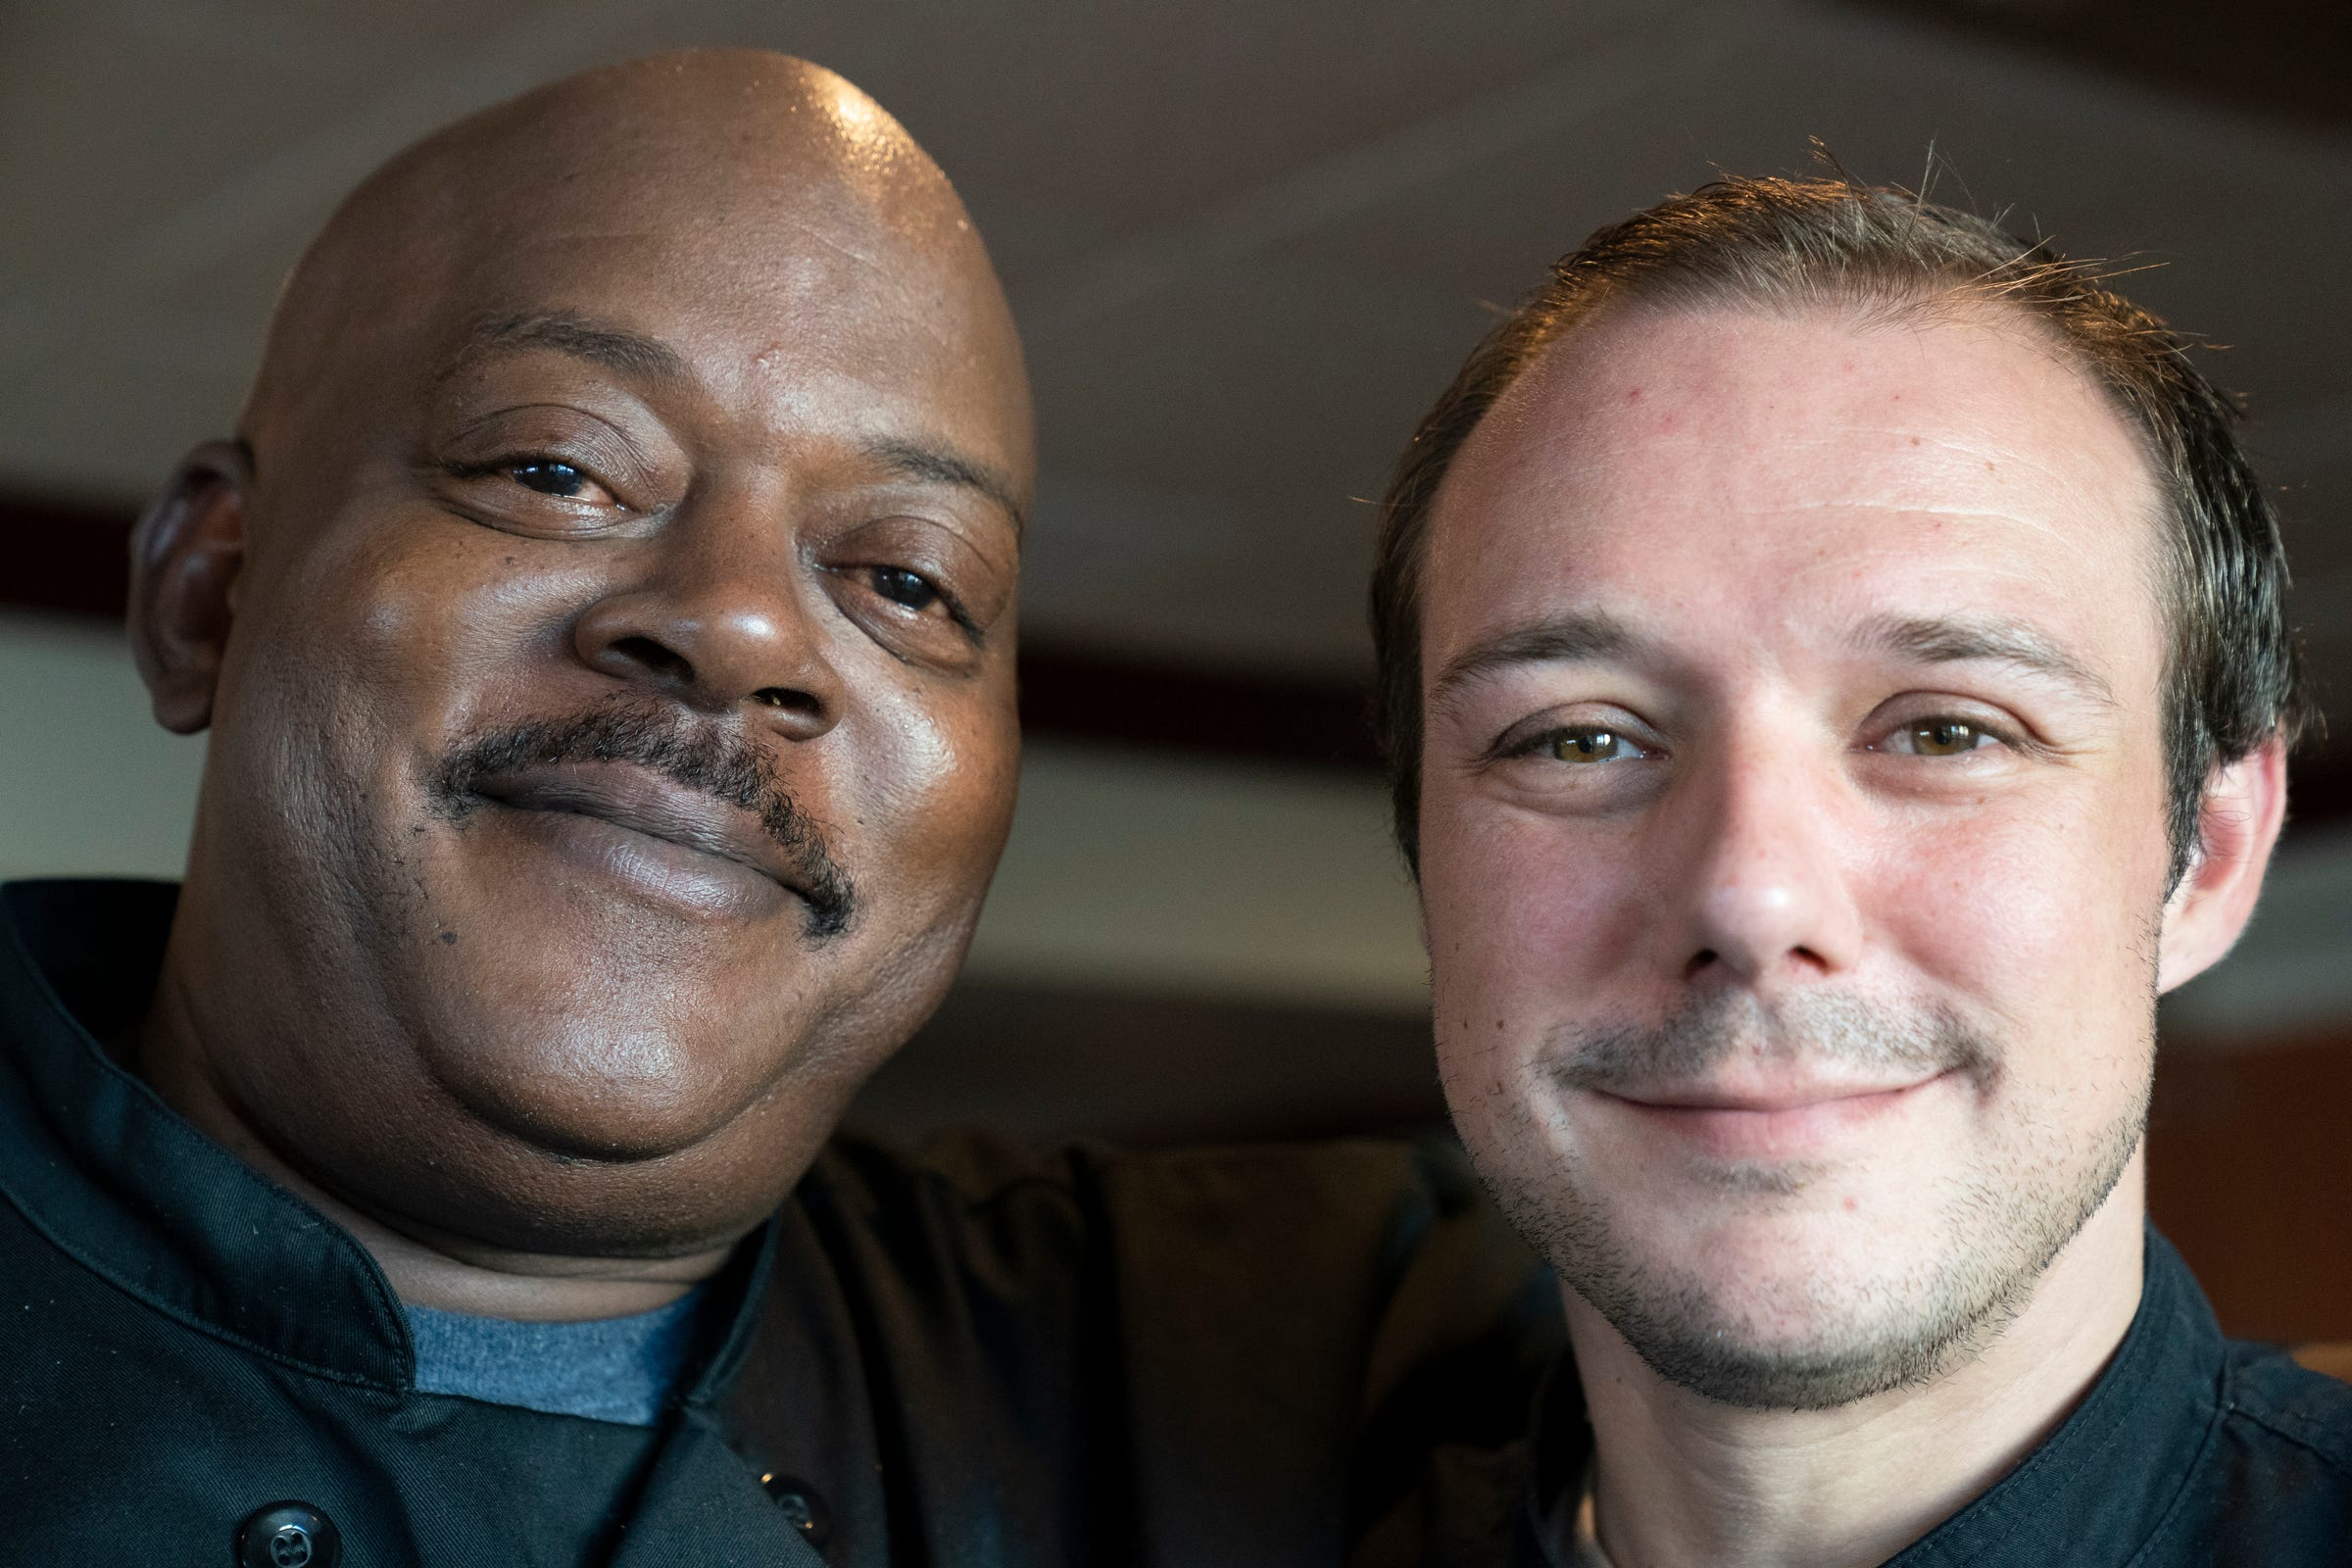 Chef Lavan Lamb, left, poses with Matthew Blancke, 37, who is a third-generation owner of Sindbad's Restaurant and Marina in Detroit. We catch up to report how the restaurant is doing through the pandemic on Sept. 16, 2021.